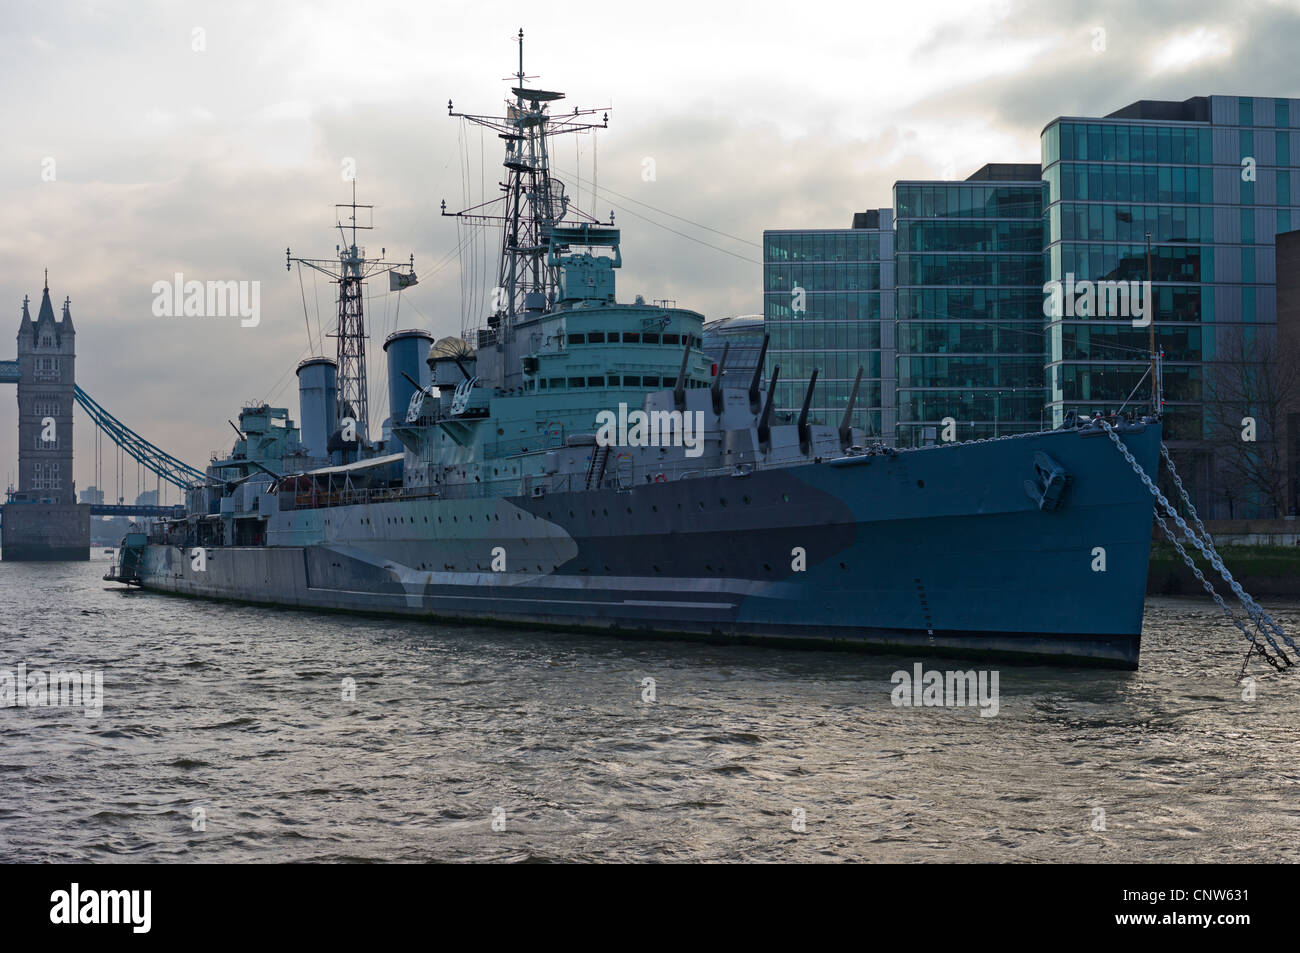 Europe England London seen from the Thames river, the warship HMS Belfast - Stock Image